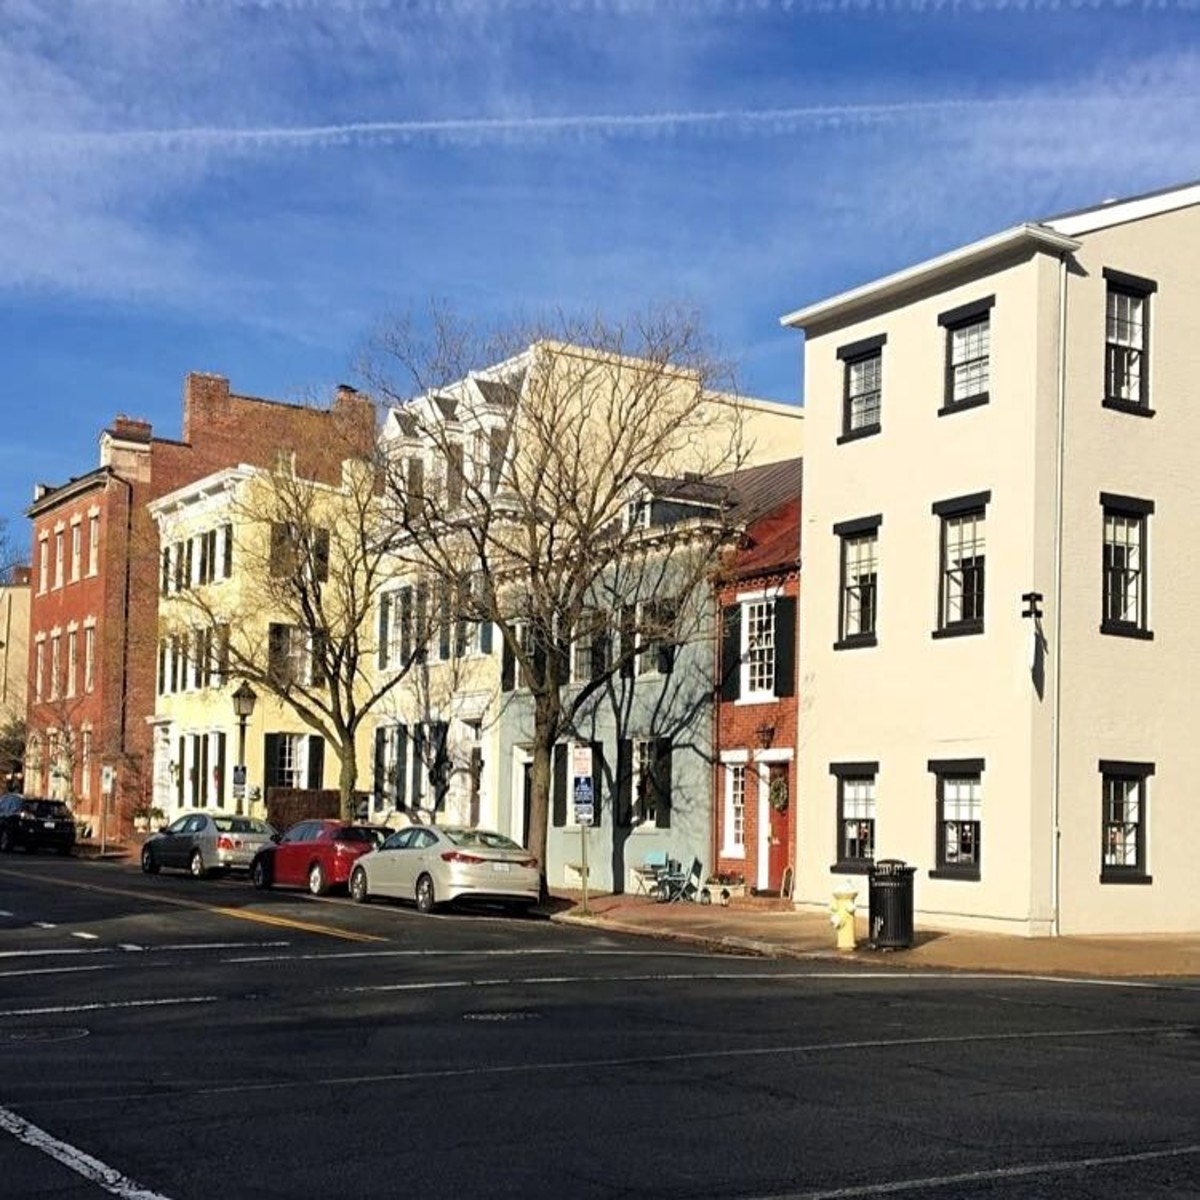 There is so much charm along the side streets of Old Town Alexandria.